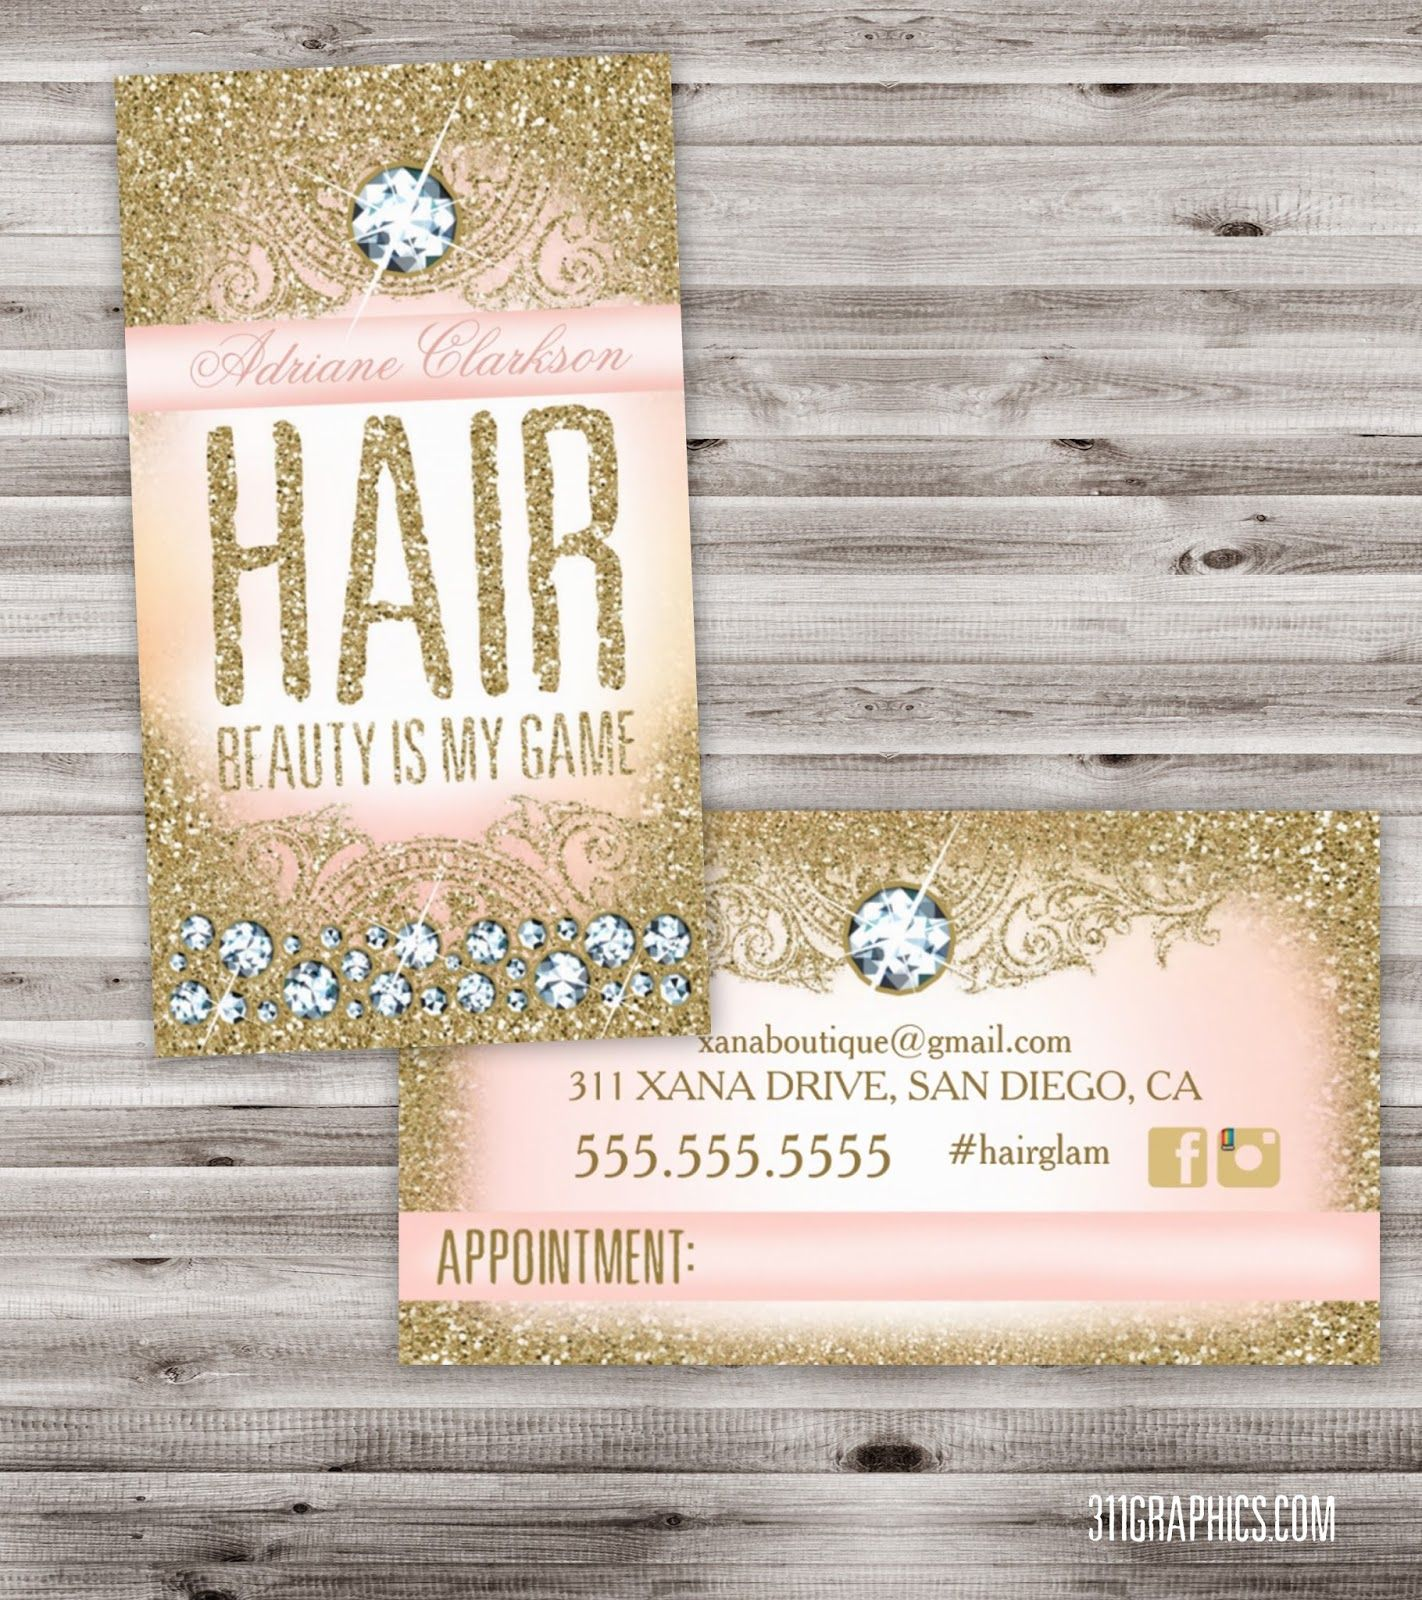 Glitter Glam Hair Appointment Card, upscale, glitzy, glamorous ...